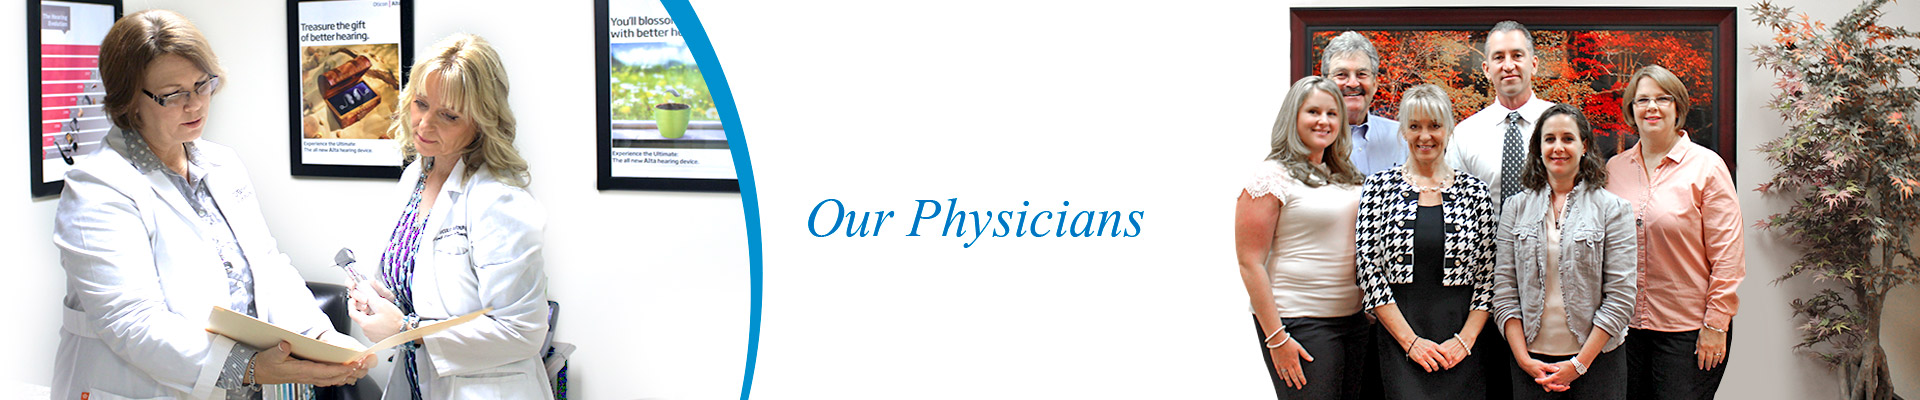 Our Physicians